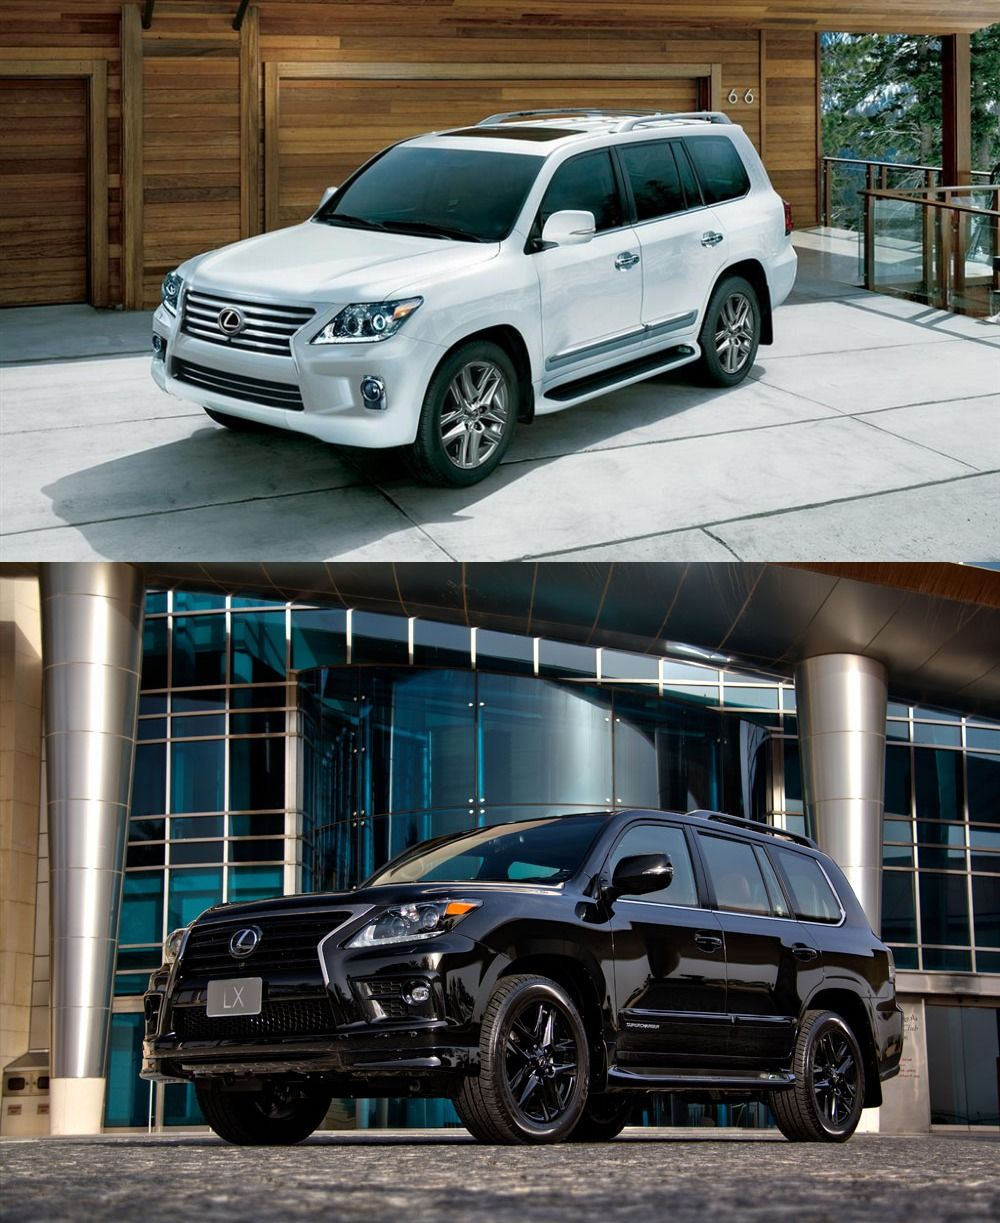 Lexus Lx570 Suv India What We Can Expect Lexus Cars Pinterest